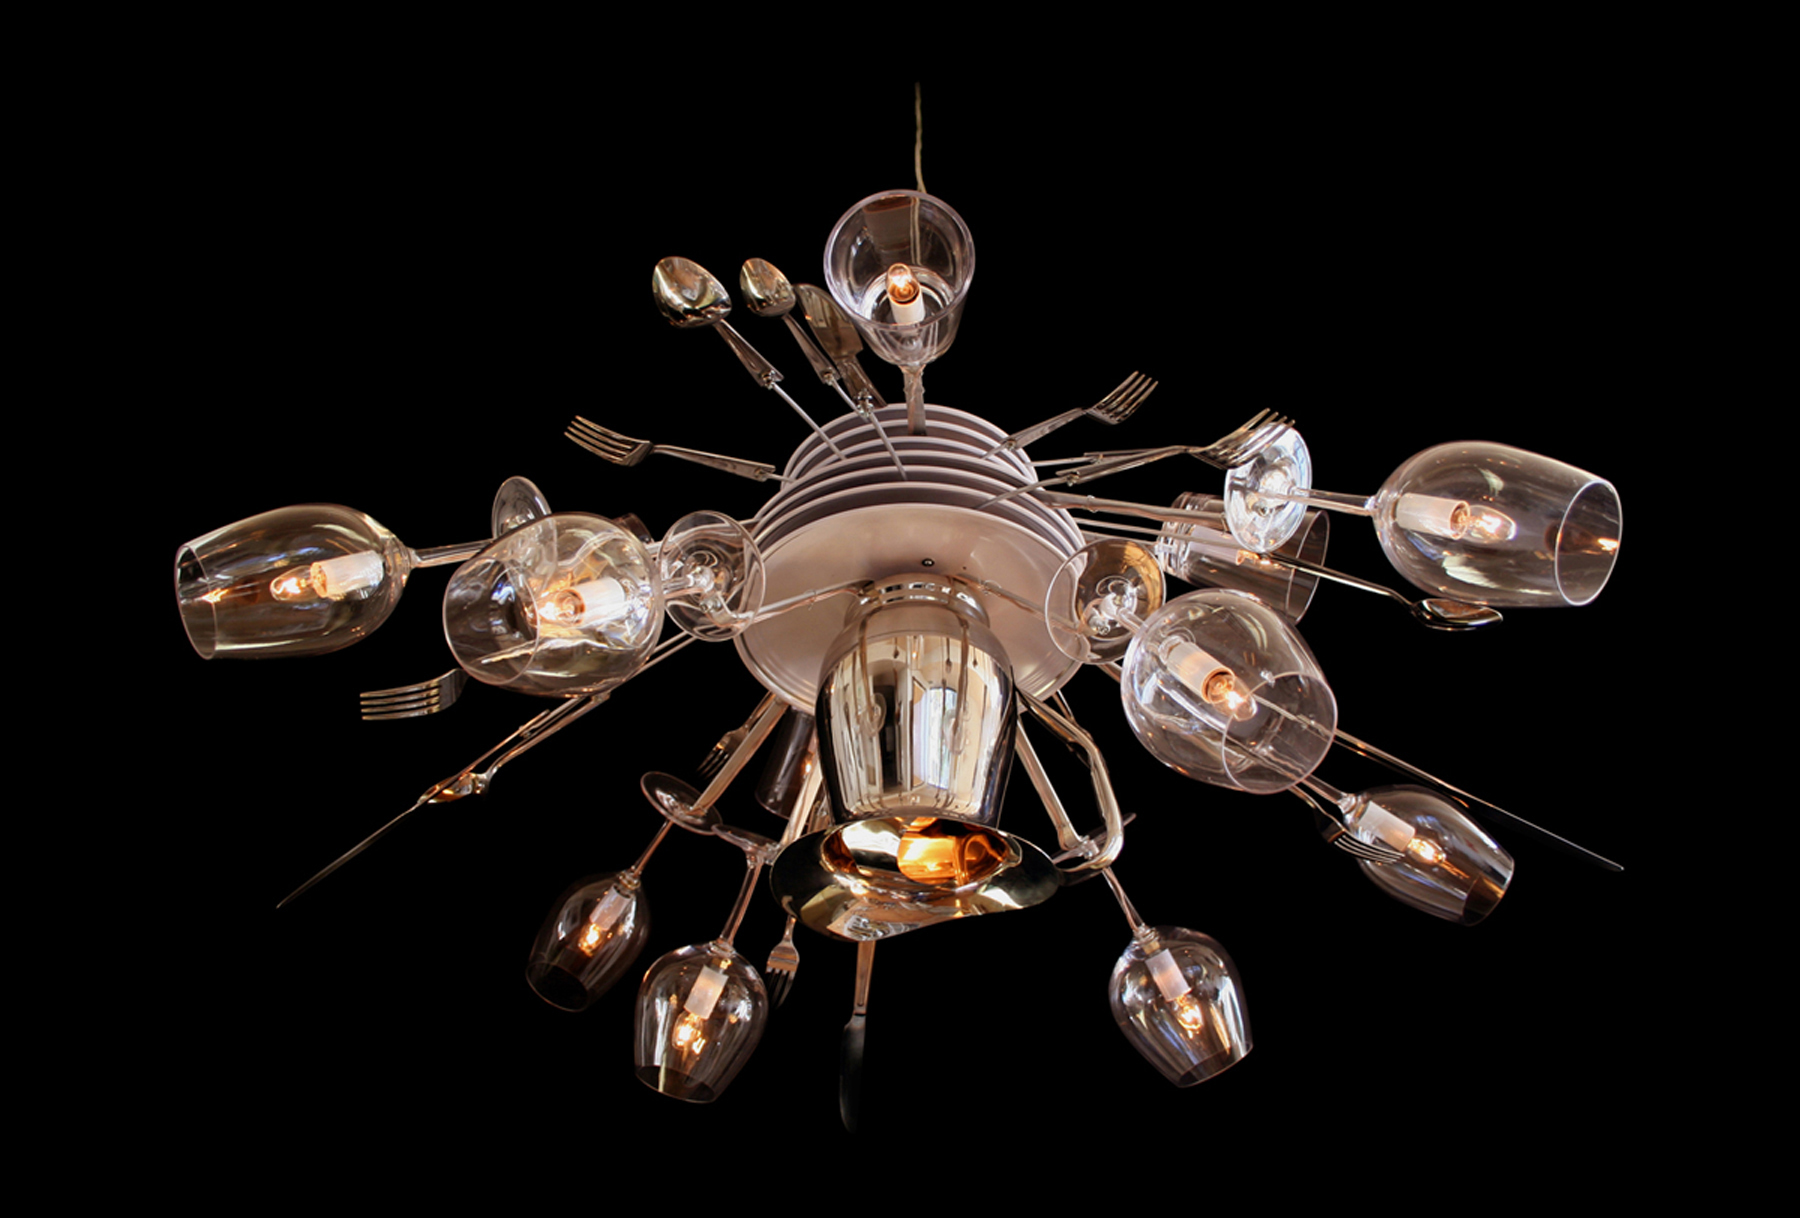 ted-swiet-chandelier